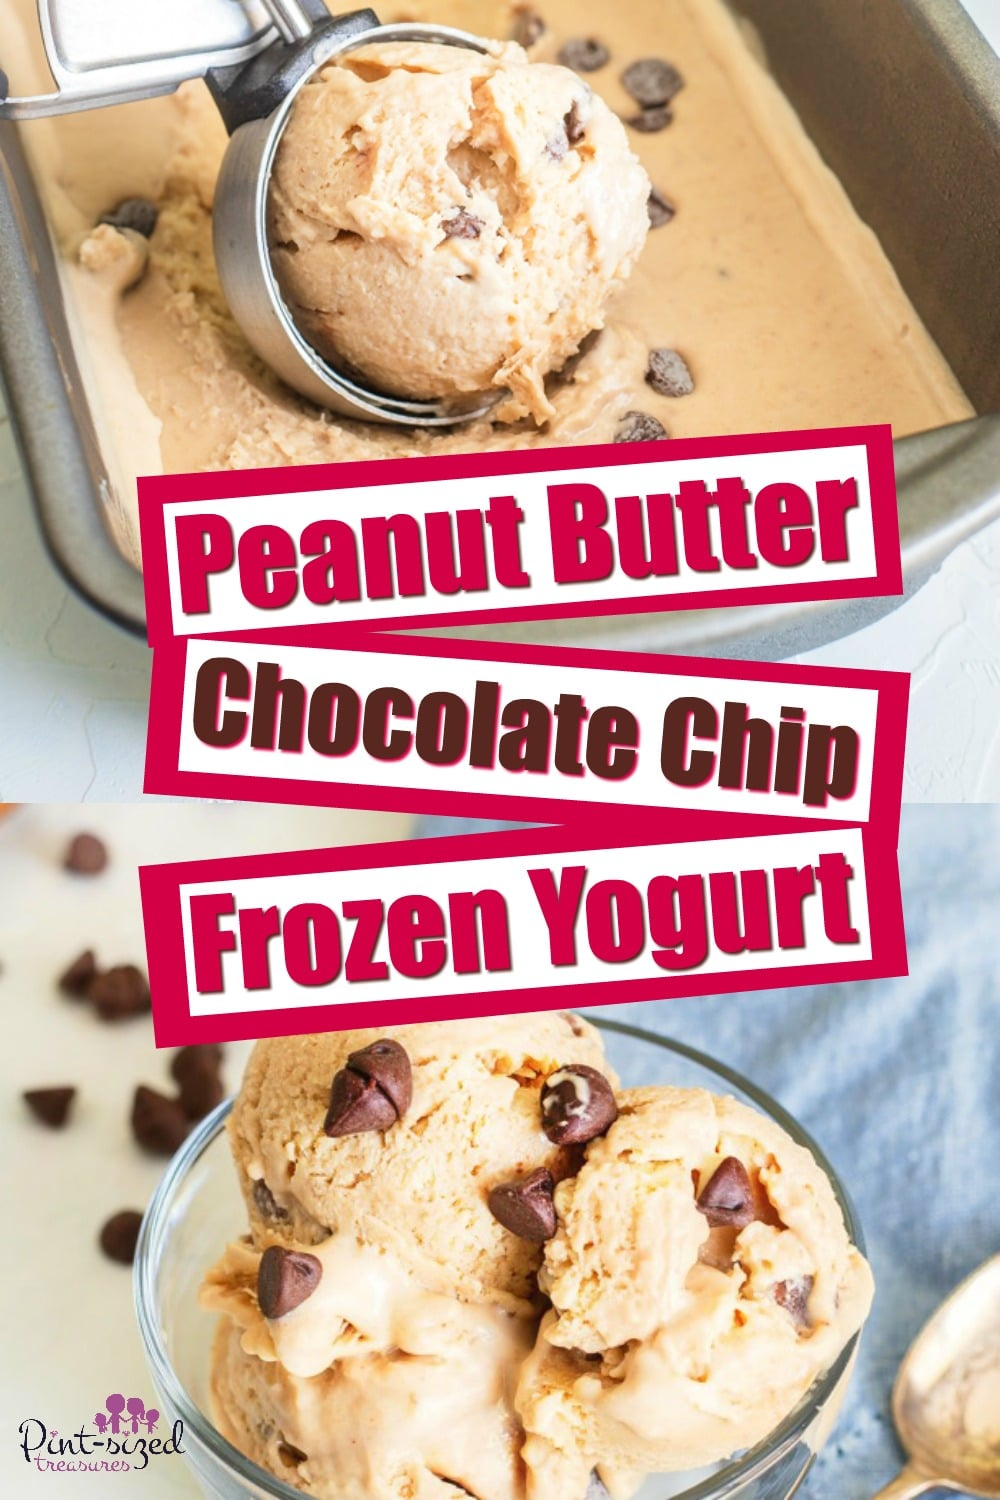 Peanut Butter Chocolate Chip Frozen Yogurt Recipe